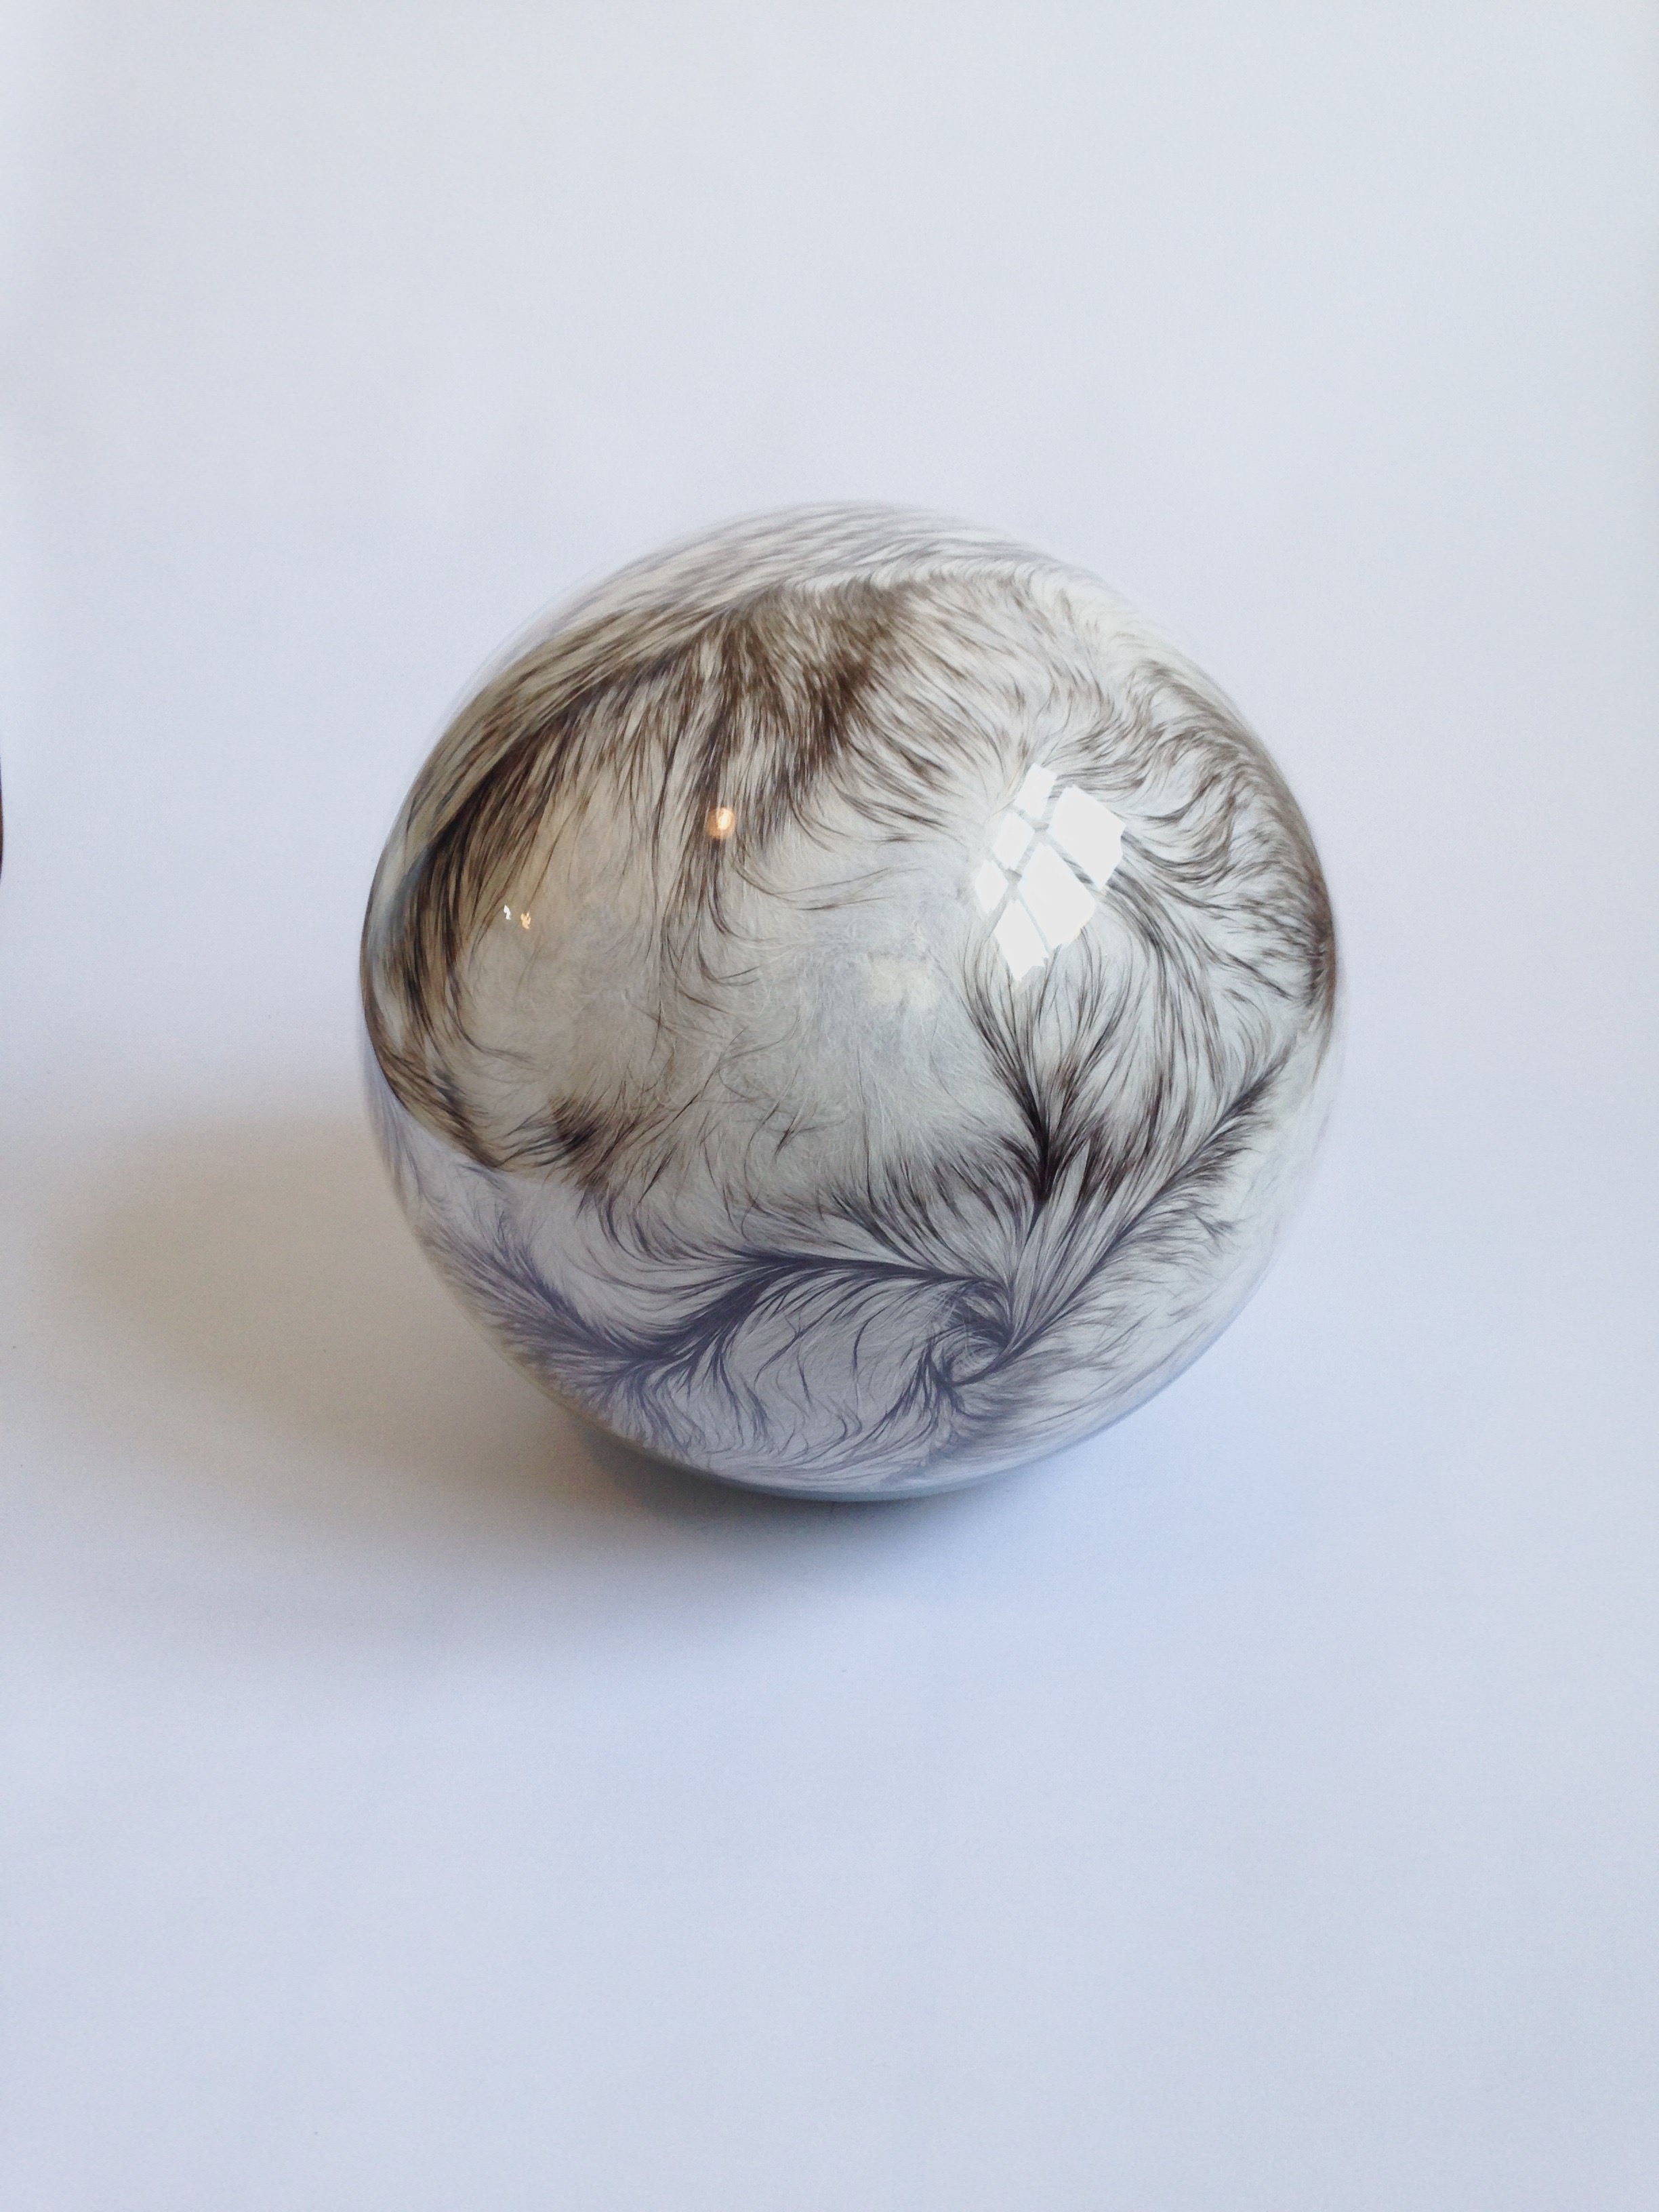 Adeline de Monseignat, Hairy Eye Ball XIII, 2015, vintage fur, pillow filler, glass, felt base, 30 cm diameter